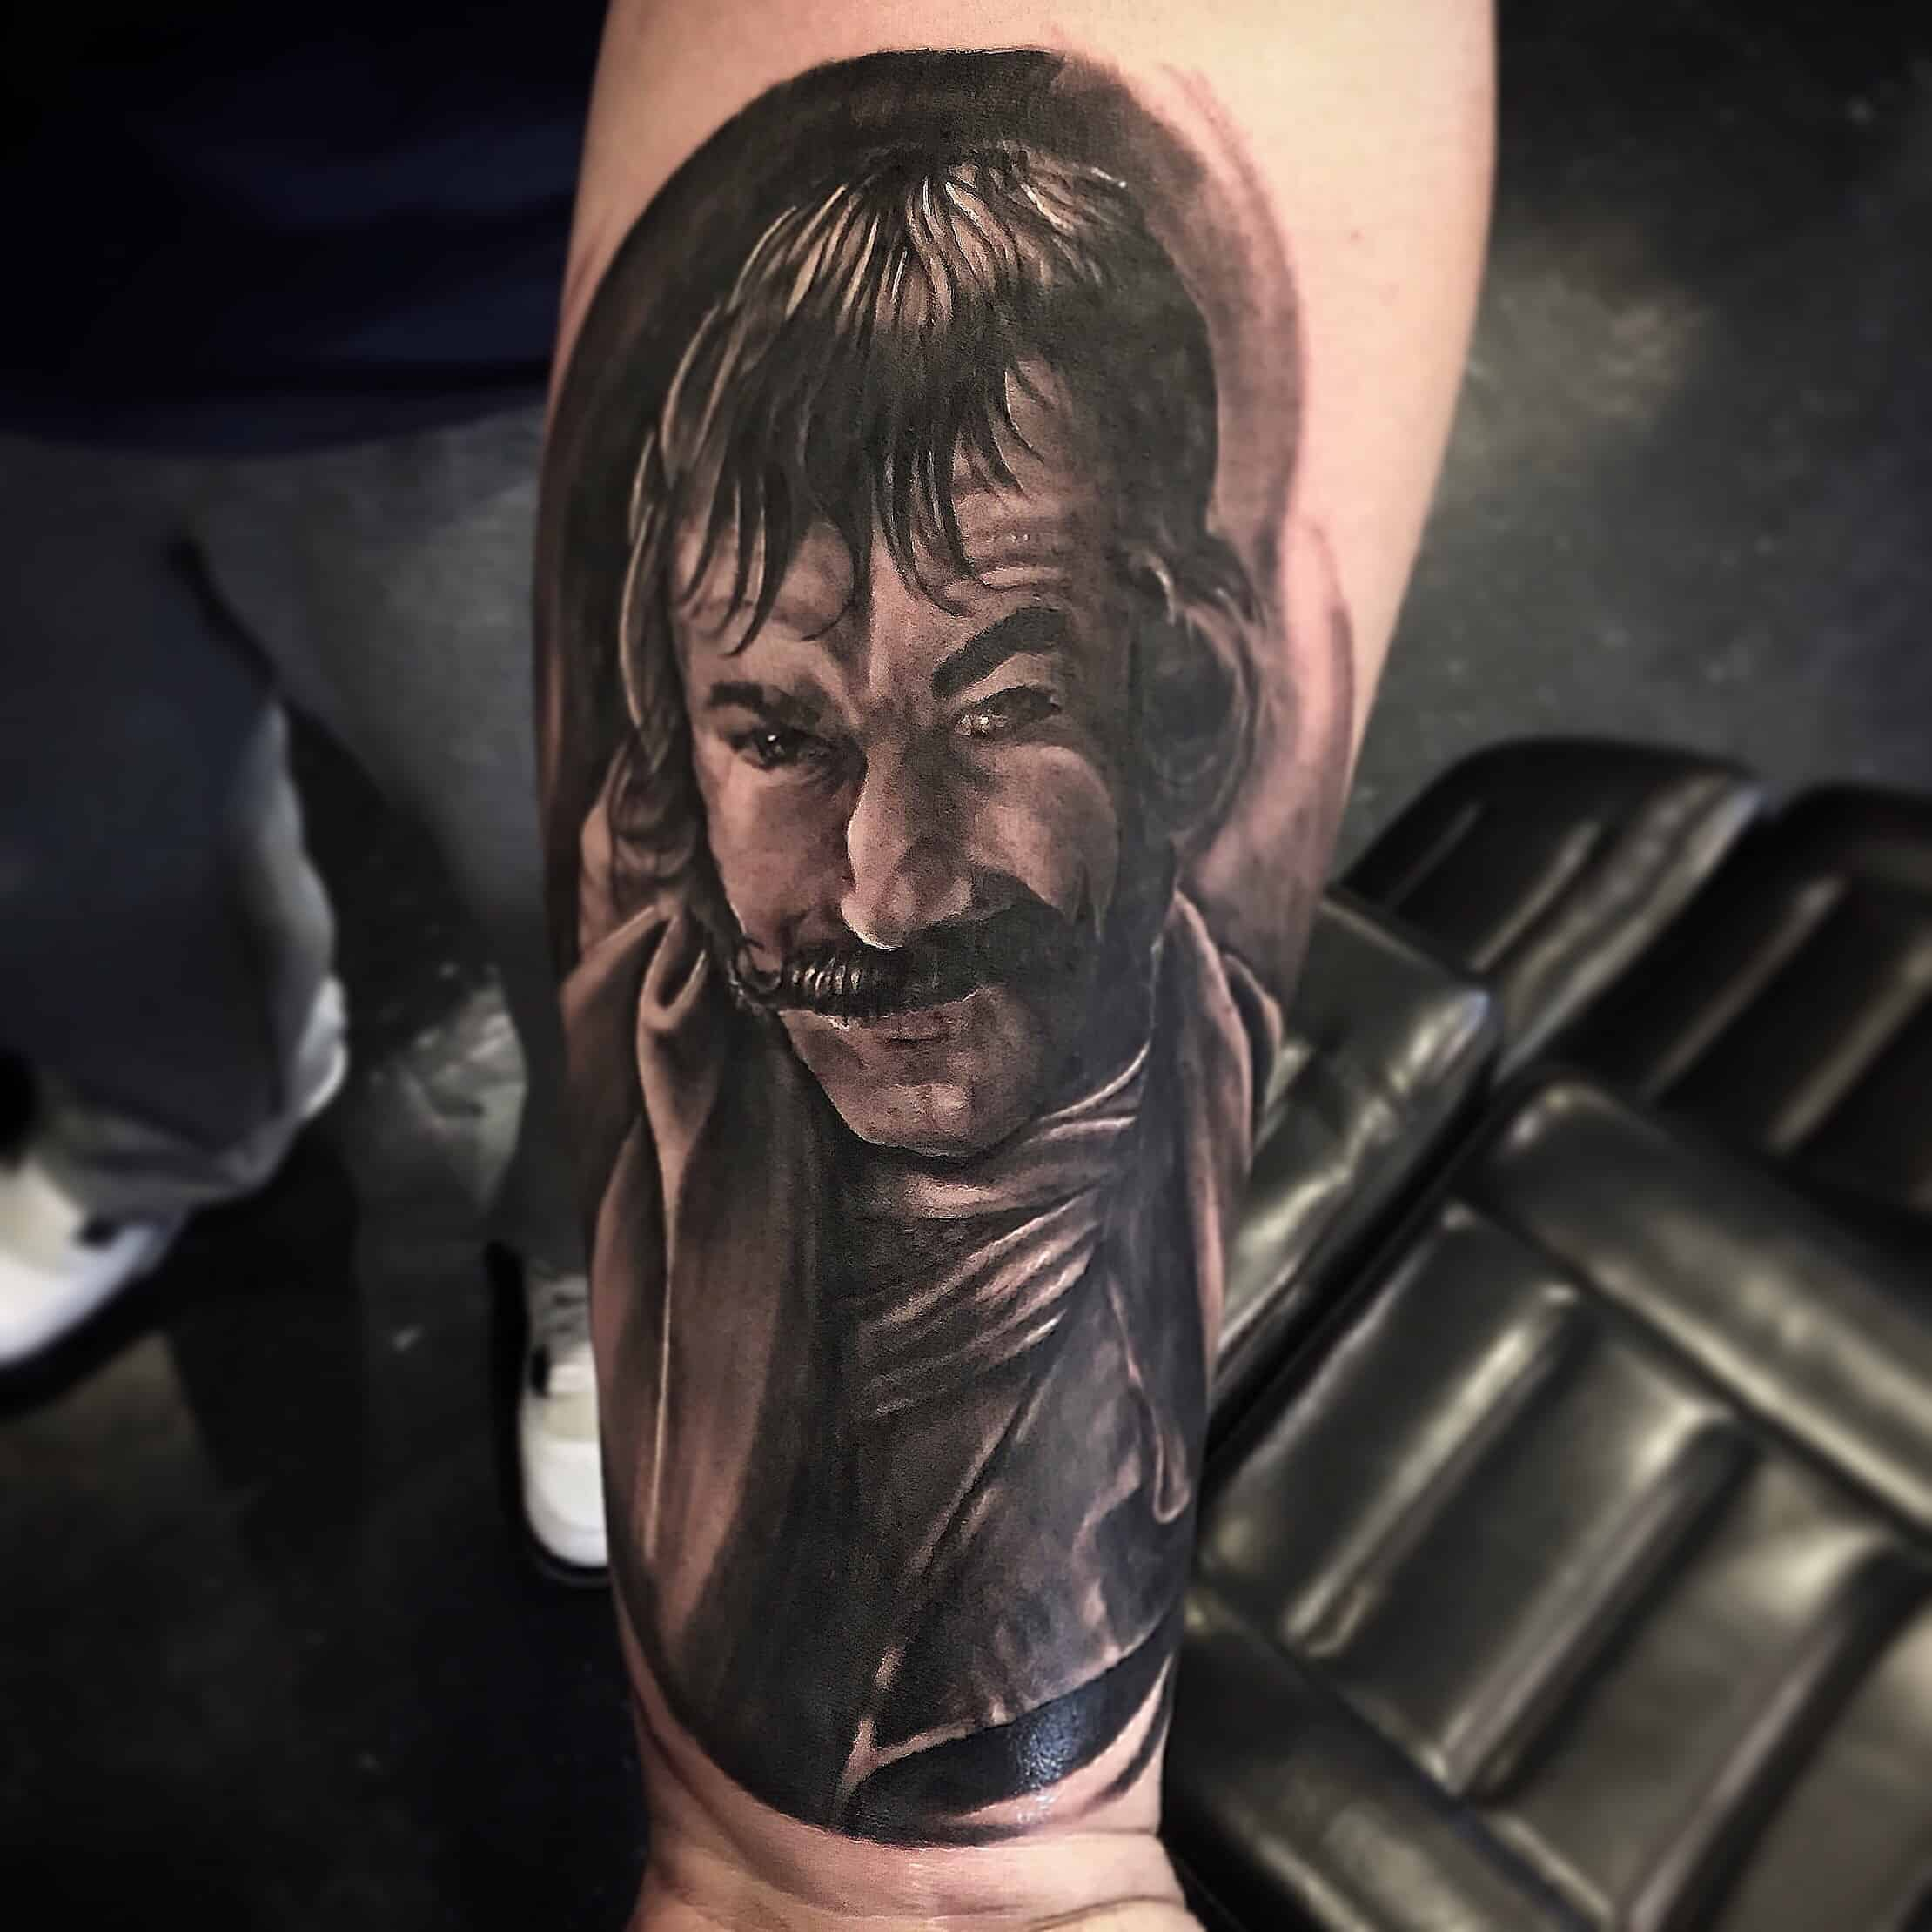 f8b3080e03972 Mikee is the Owner/Artist of Inkstained Tattoo Studio. Specializing in  realism, black and grey, new school and neo-traditional. Whatever you  choose to do, ...